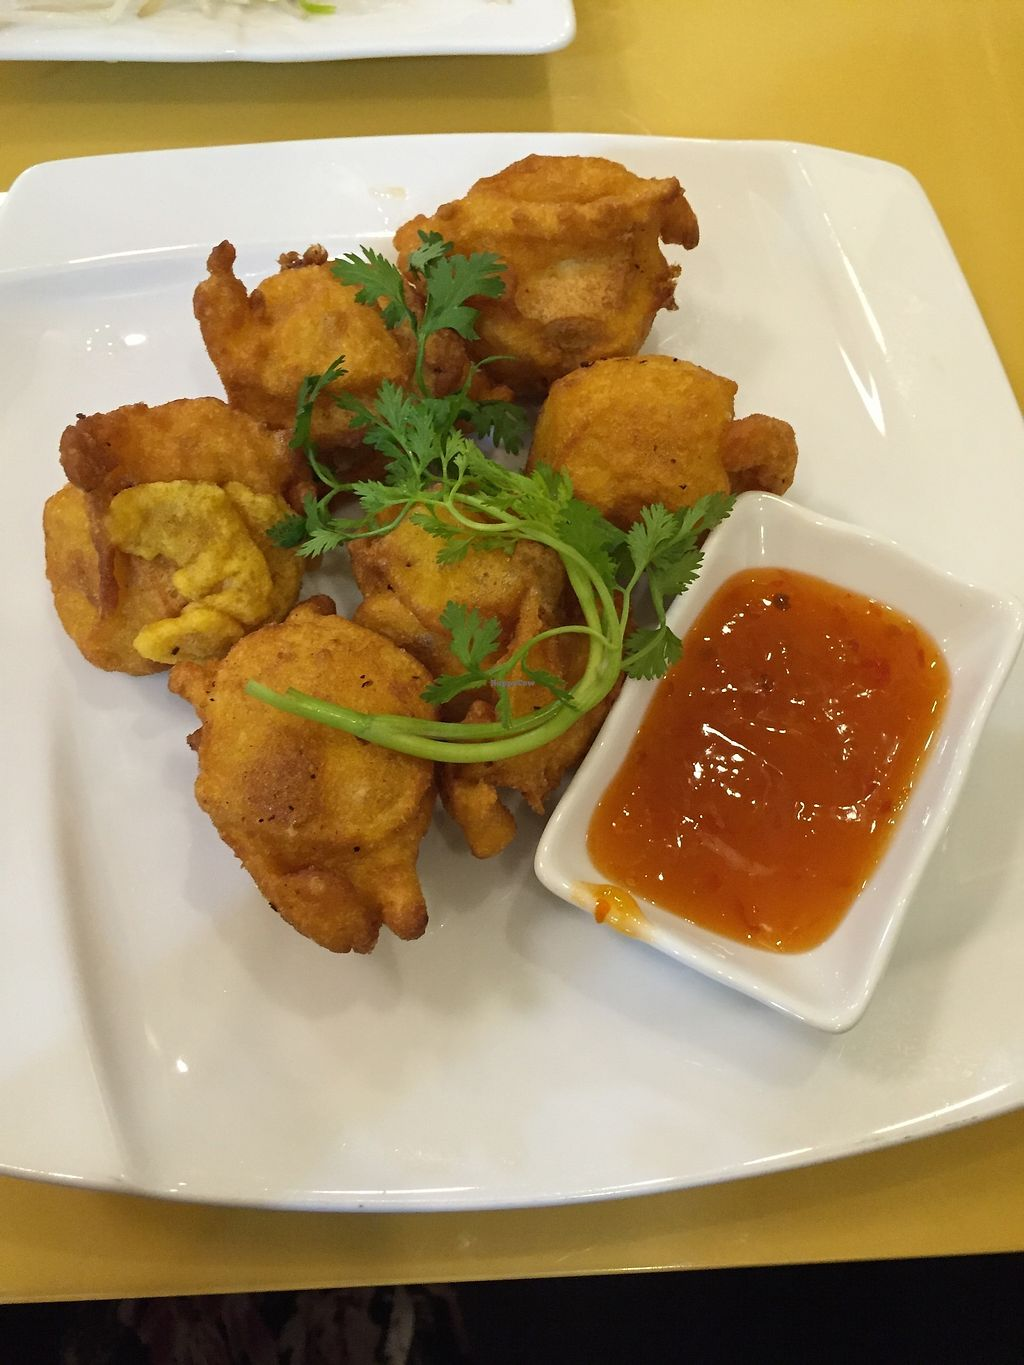 """Photo of Loving Hut Thai Duong  by <a href=""""/members/profile/pyuibd"""">pyuibd</a> <br/>Deep fried tofu <br/> December 28, 2017  - <a href='/contact/abuse/image/89077/340063'>Report</a>"""